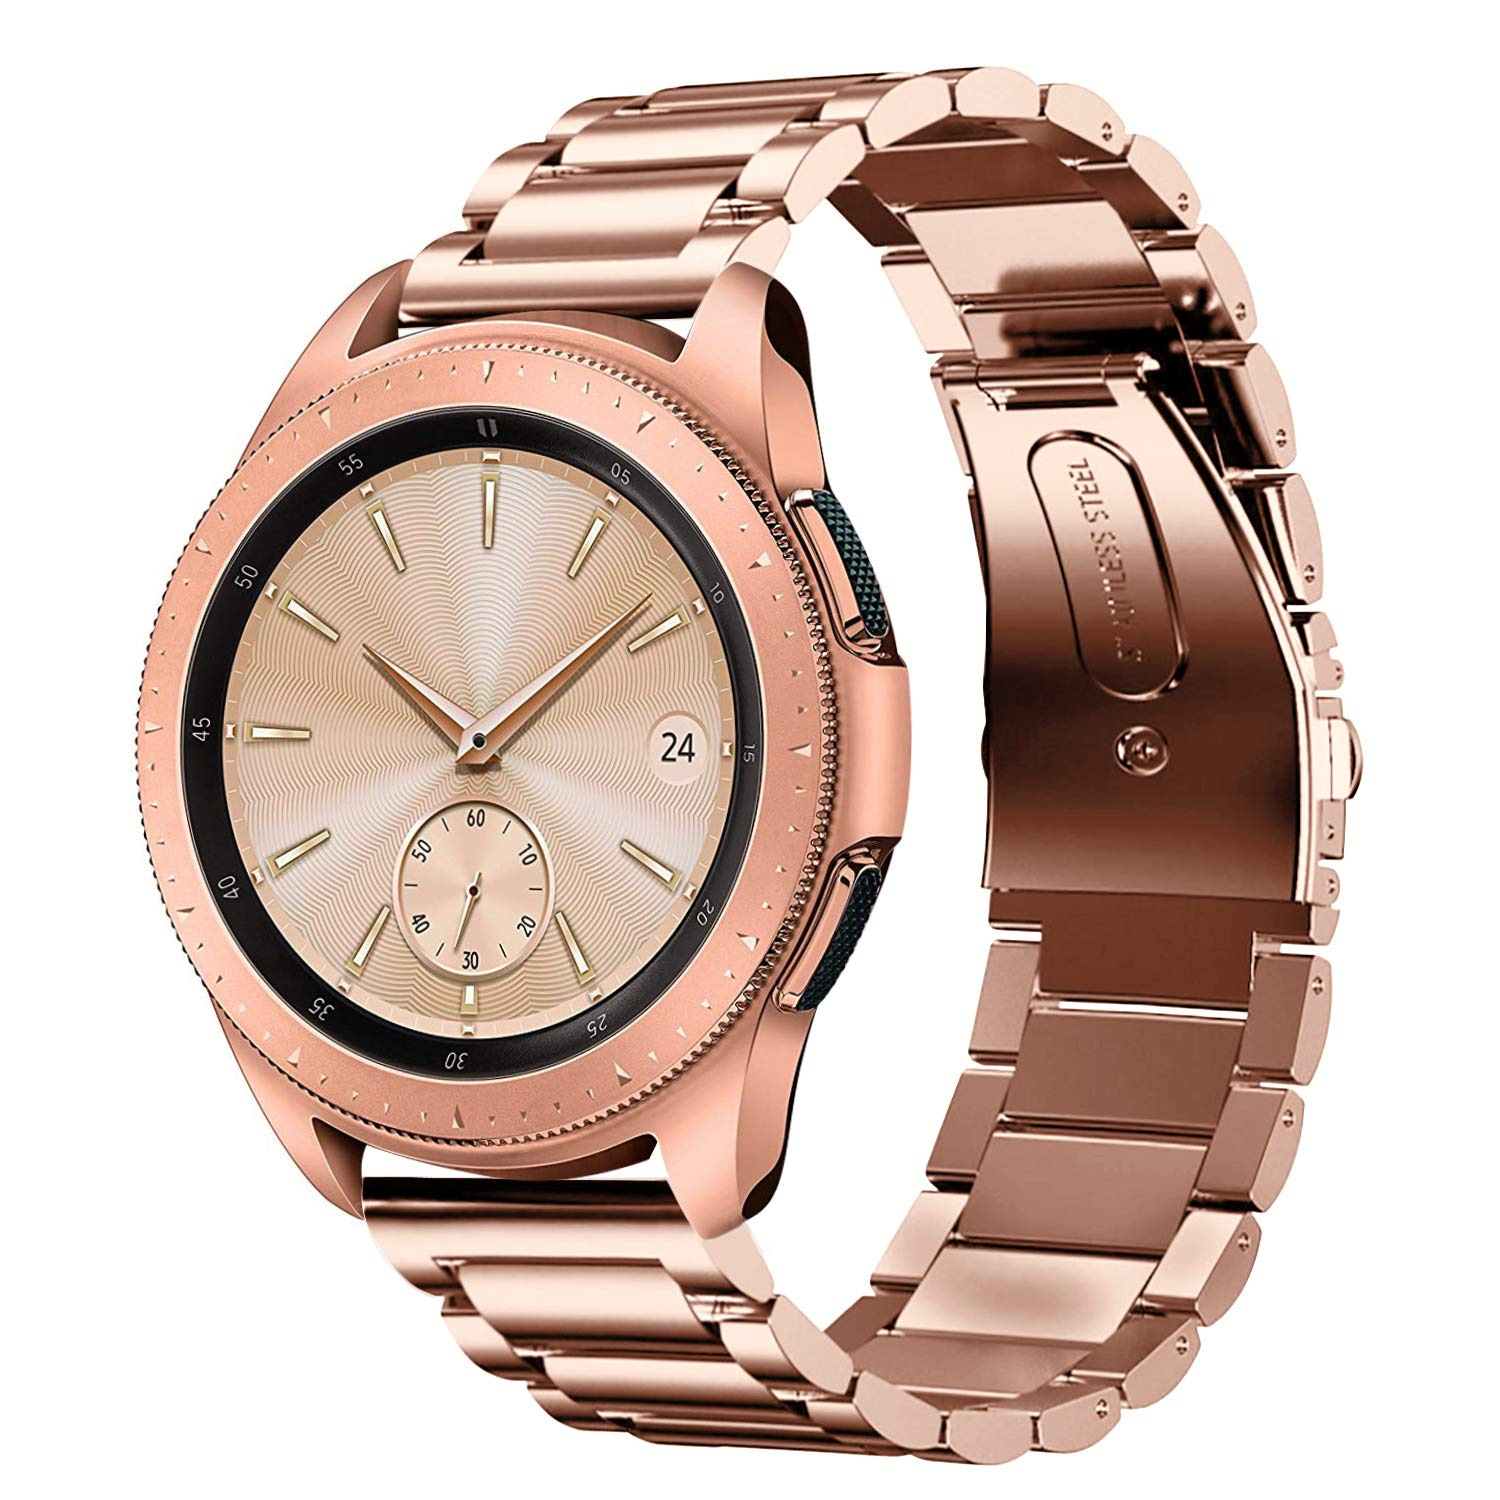 Shangpule Compatible Samsung Galaxy Watch Bands 42mm 46mm, Stainless Steel Metal Replacement Strap Bracelet Compatible Galaxy Watch SM-R810/SM-R800 Smartwatch (Rose Gold, 42mm)